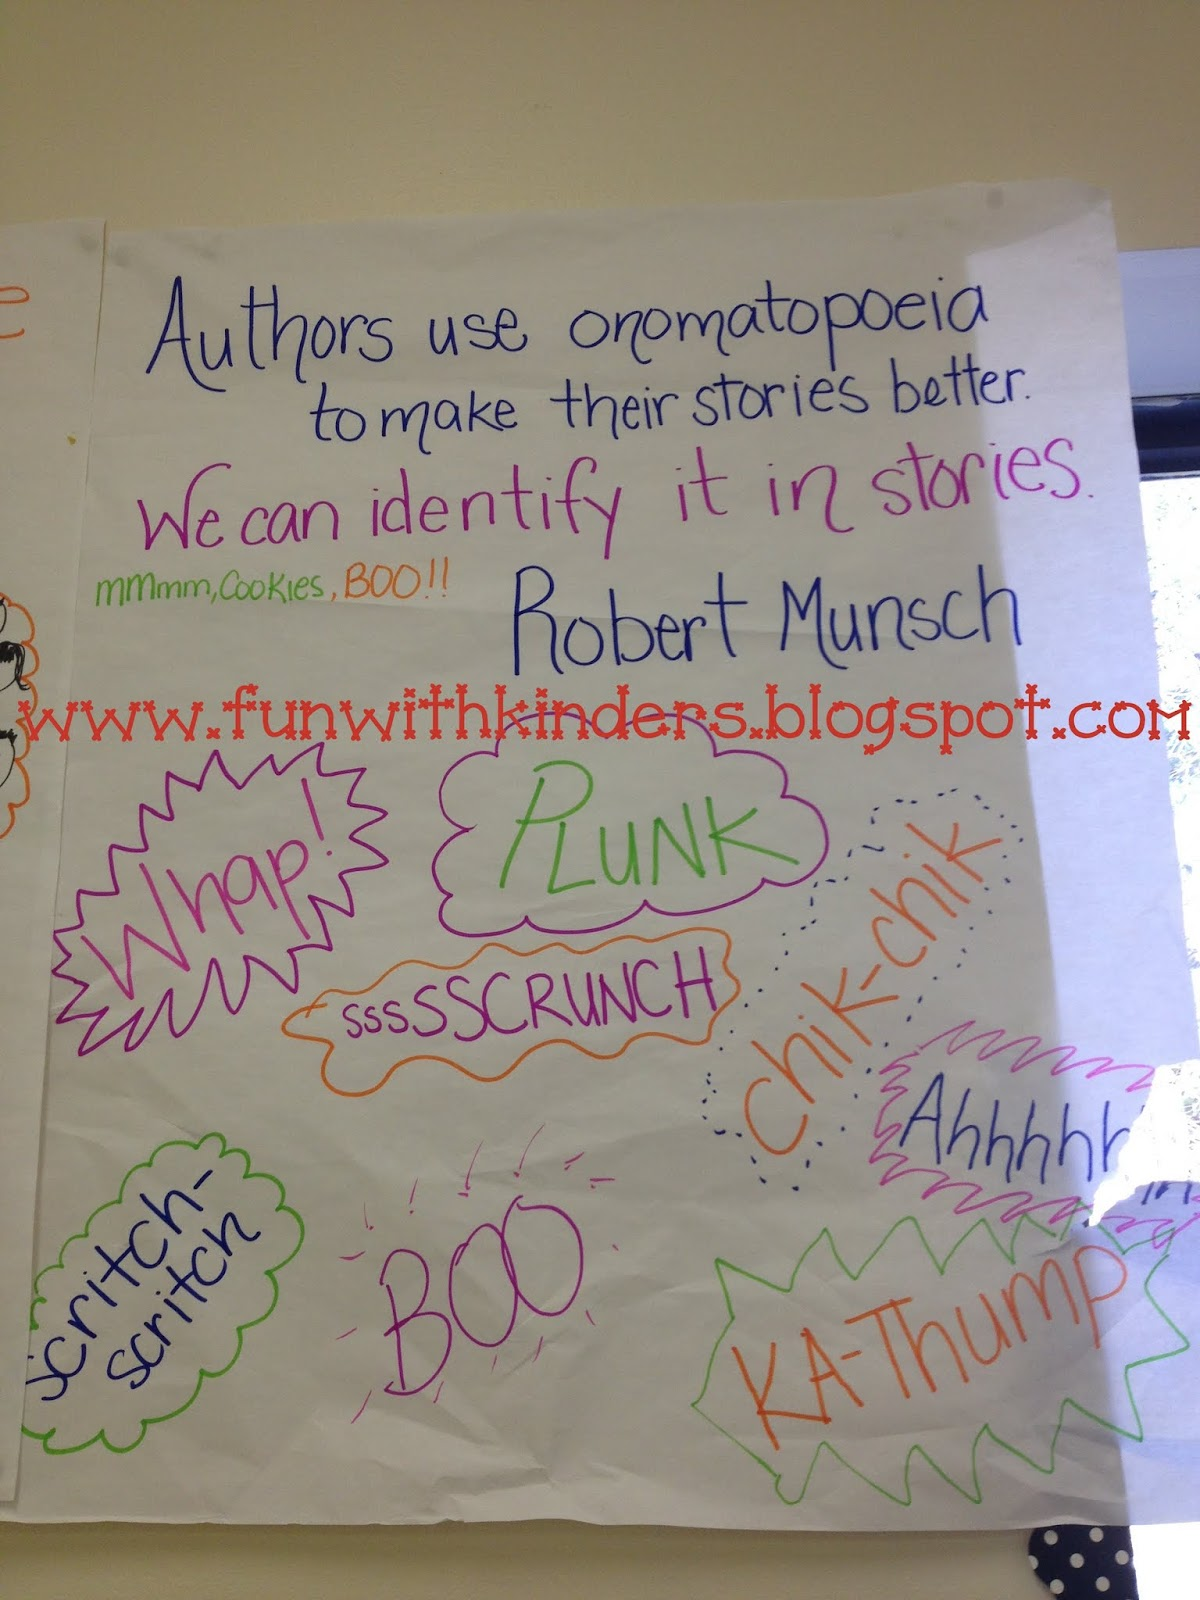 Fun With Kinders Onomatopoeia Robert Munsch Author Study